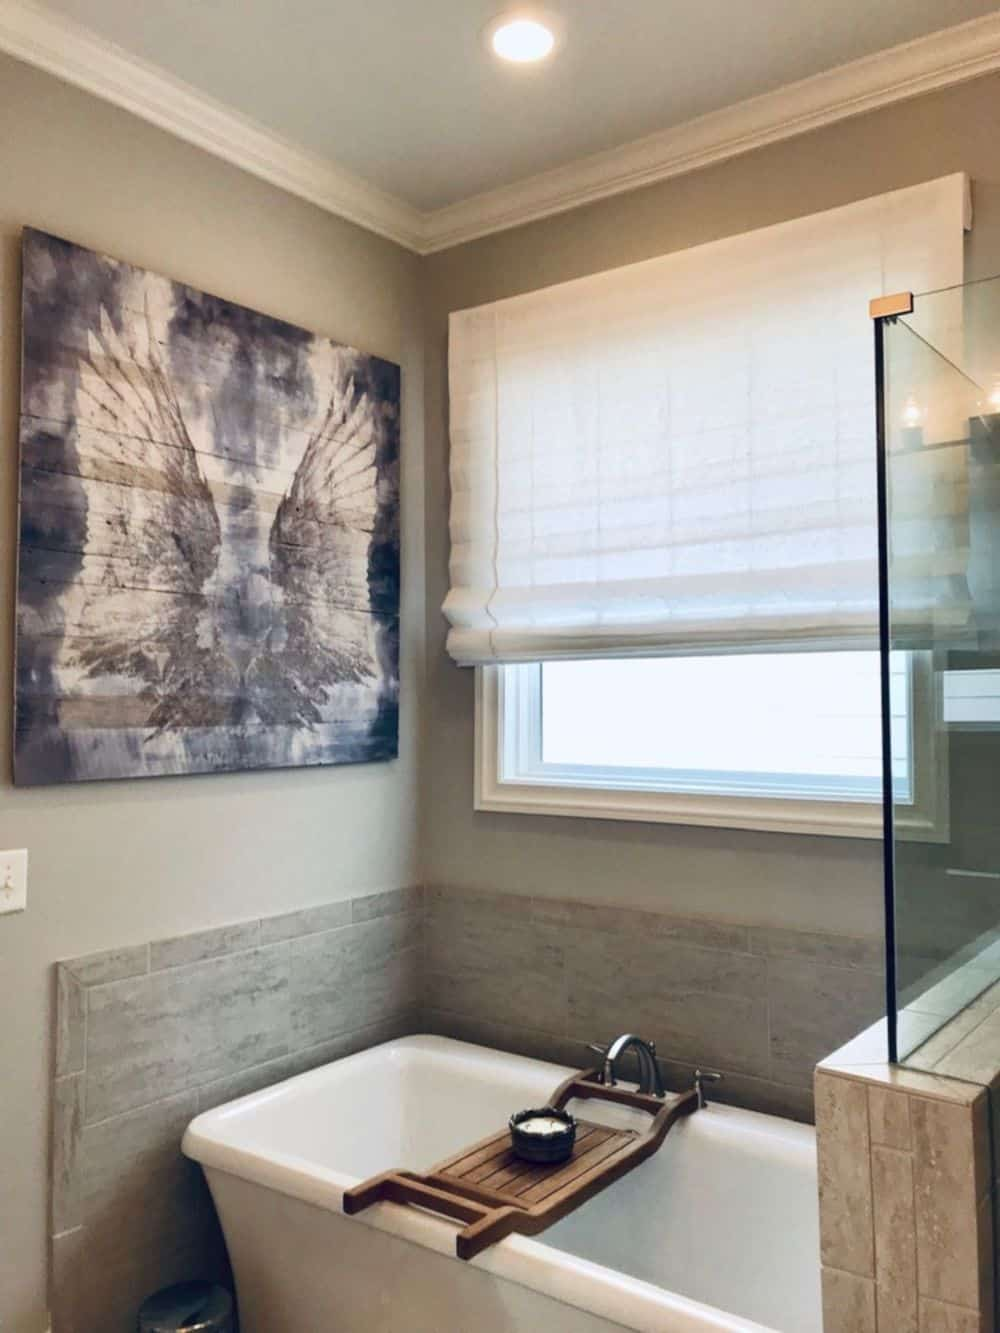 A master bathroom featuring a walk-in shower and a freestanding tub set near the window with a Roman-style window shade. The wall decor looks very attractive.